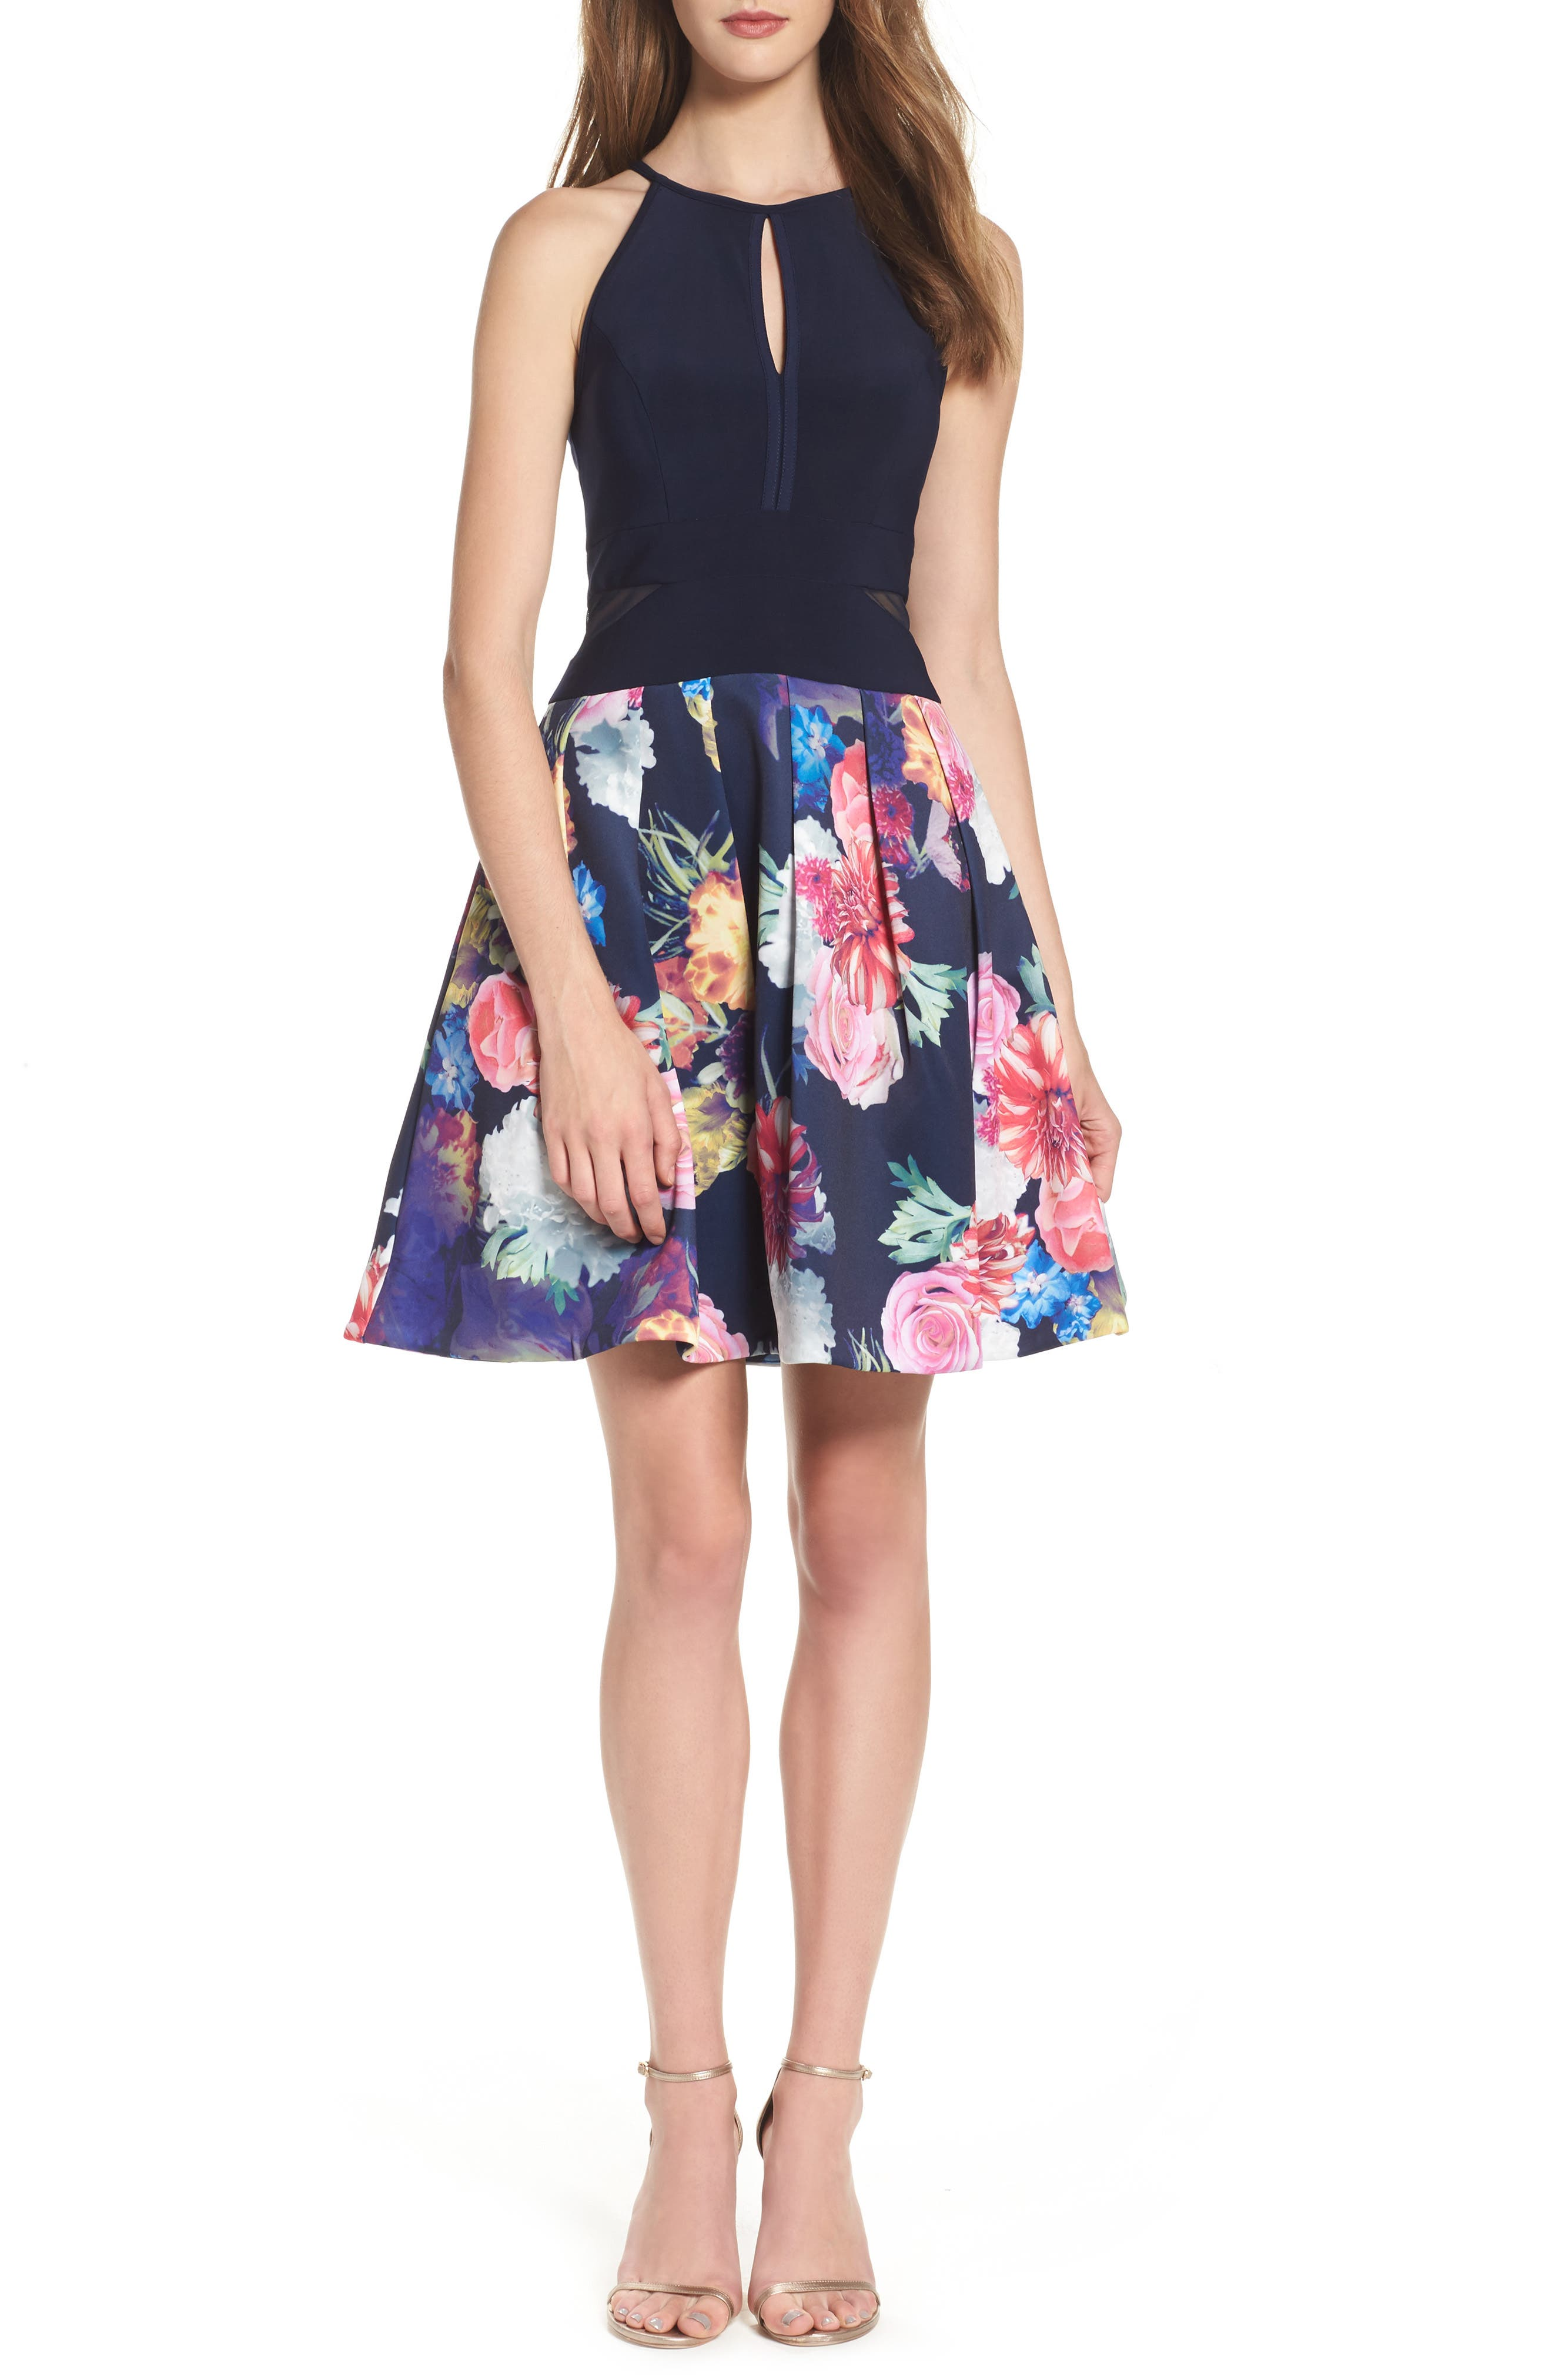 Keyhole Mixed Media Party Dress,                         Main,                         color, Navy/ Pink